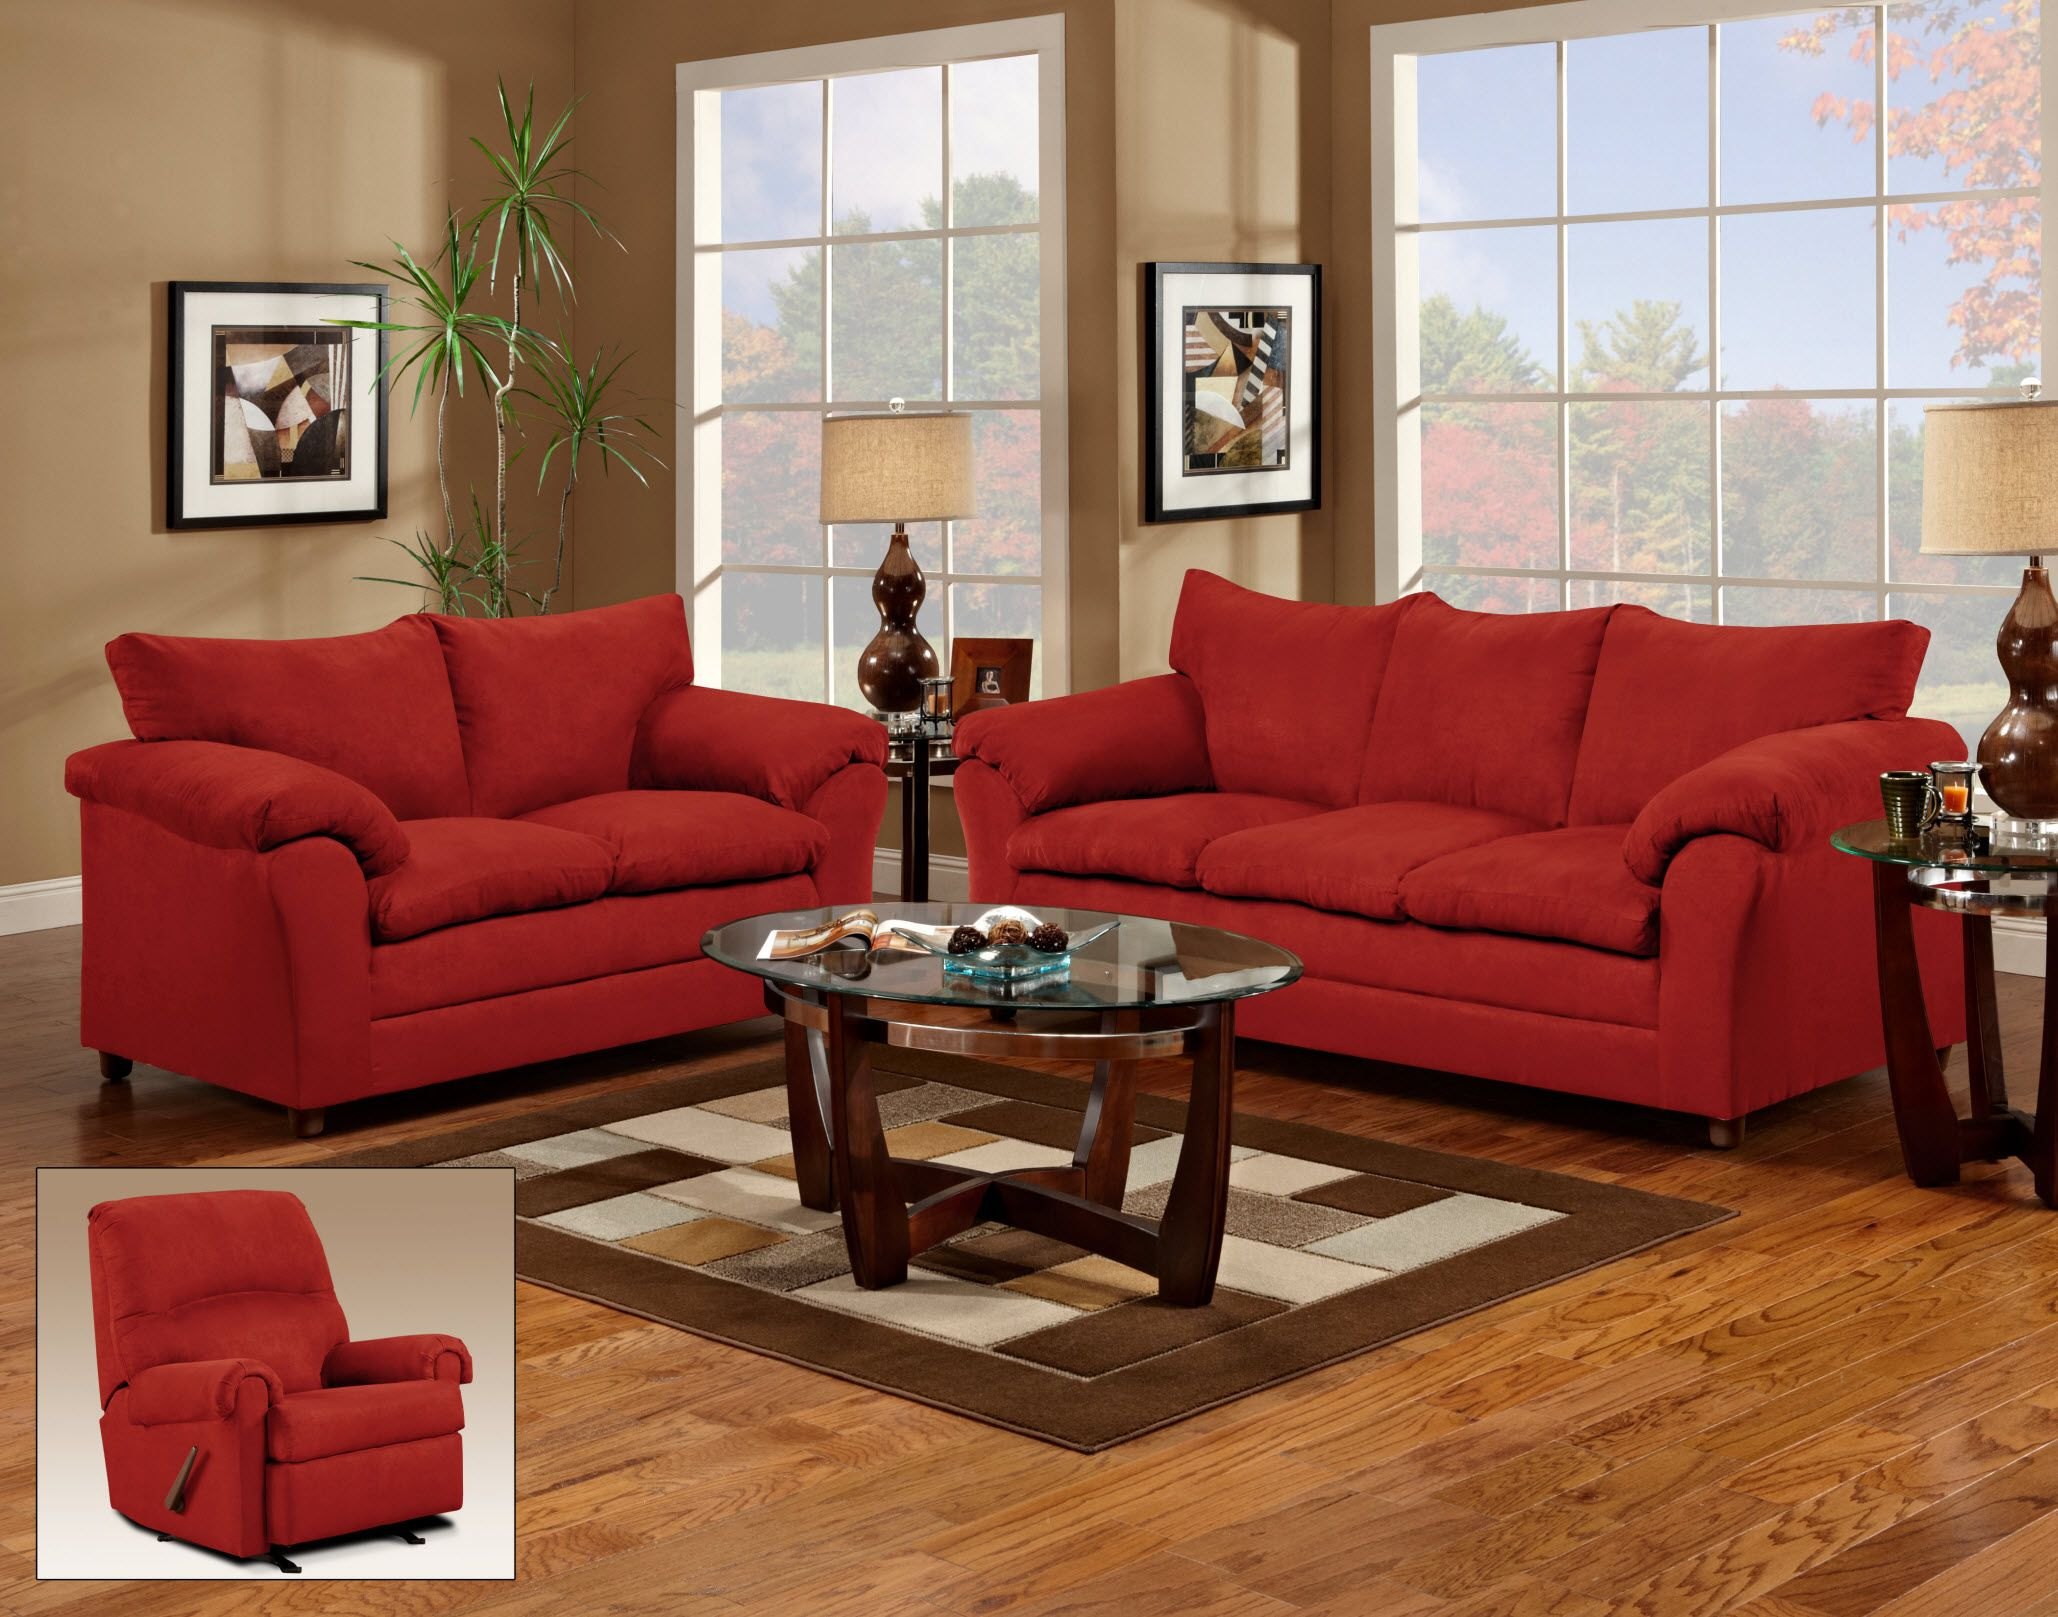 Browse a wide selection of modern couches for sale on SamHomeDecor